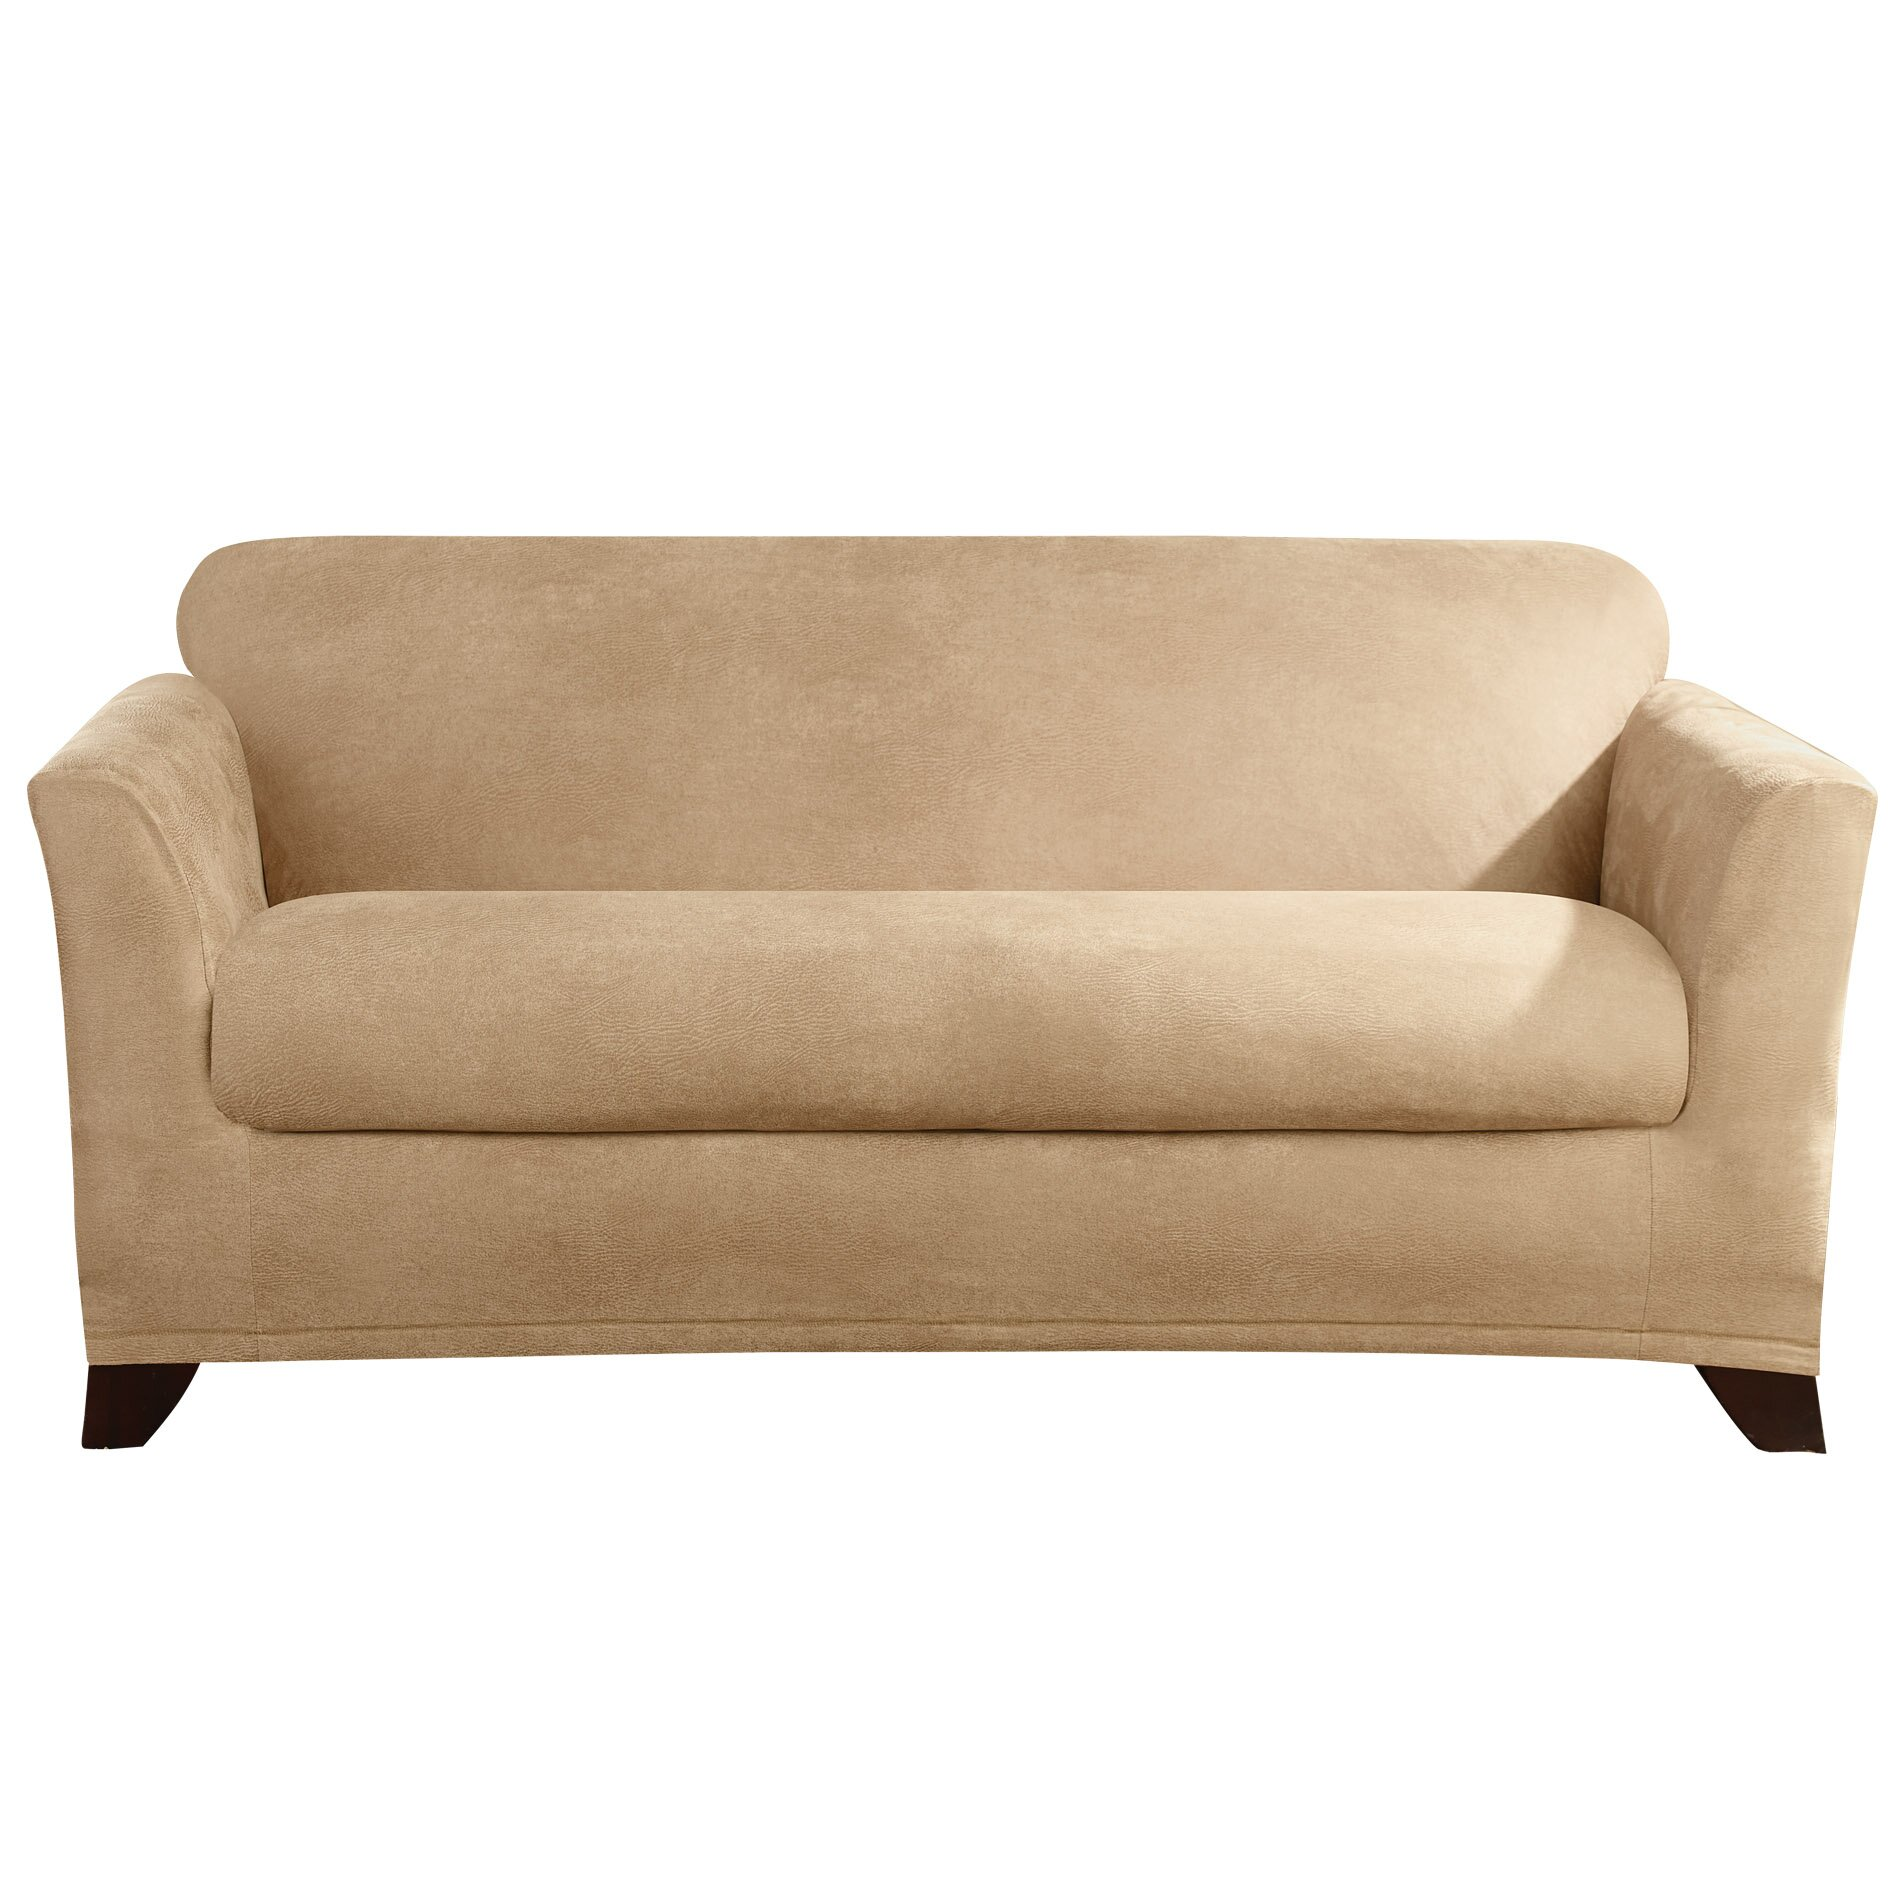 Sure fit stretch leather loveseat slipcover wayfair Loveseat slipcover